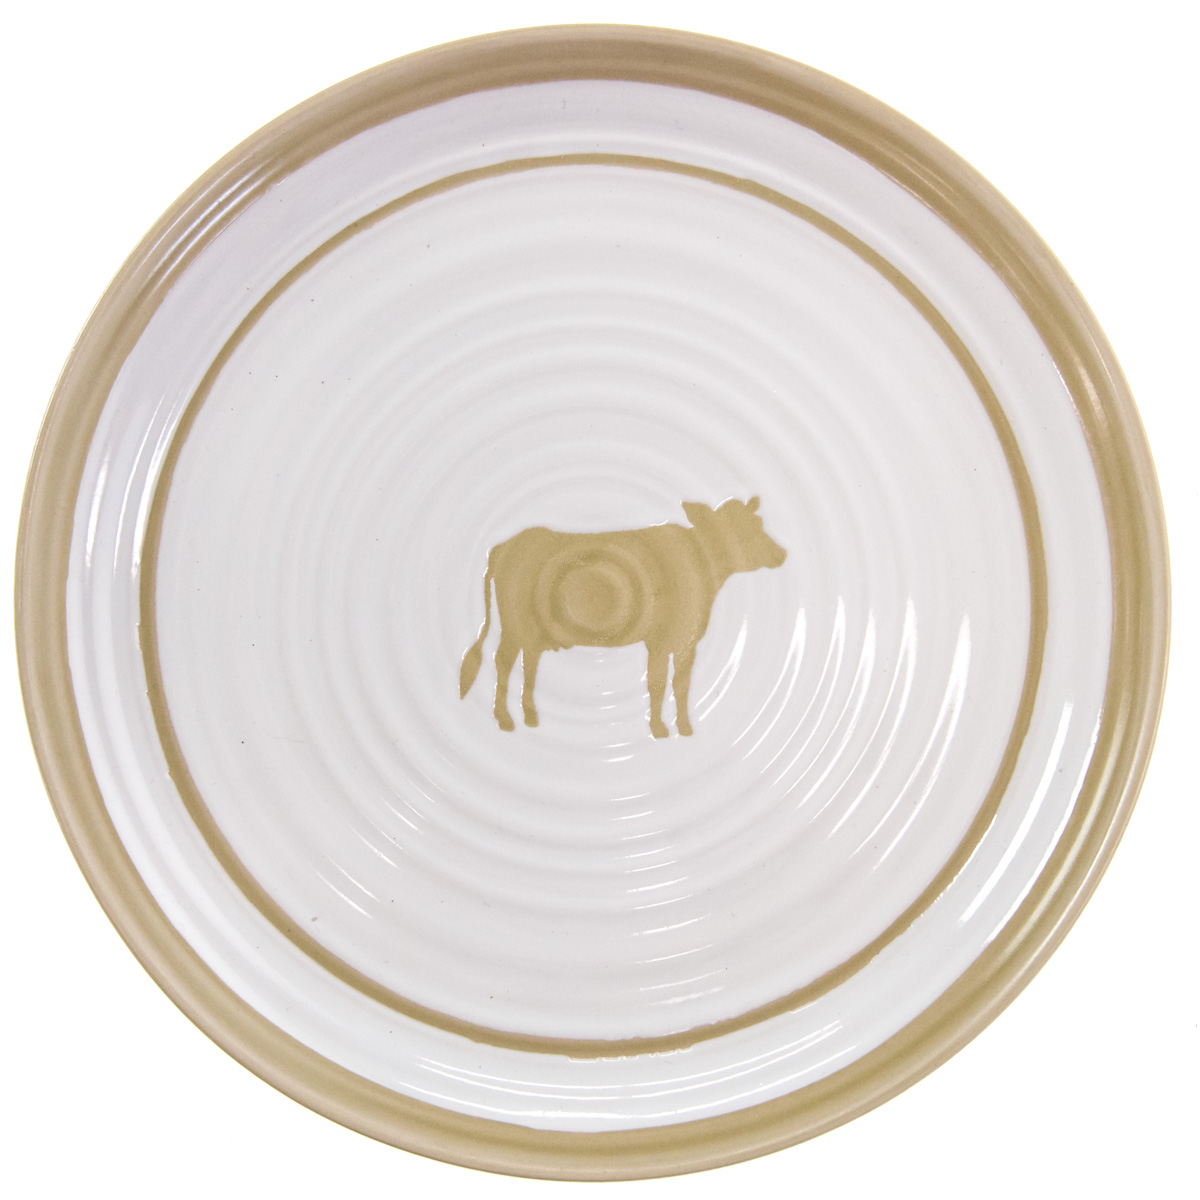 Stoneware Farmhouse Dinner Plate - Cow | Collections | Farmhouse - Cracker Barrel Old Country Store  sc 1 st  Shop Cracker Barrel & Stoneware Farmhouse Dinner Plate - Cow | Collections | Farmhouse ...